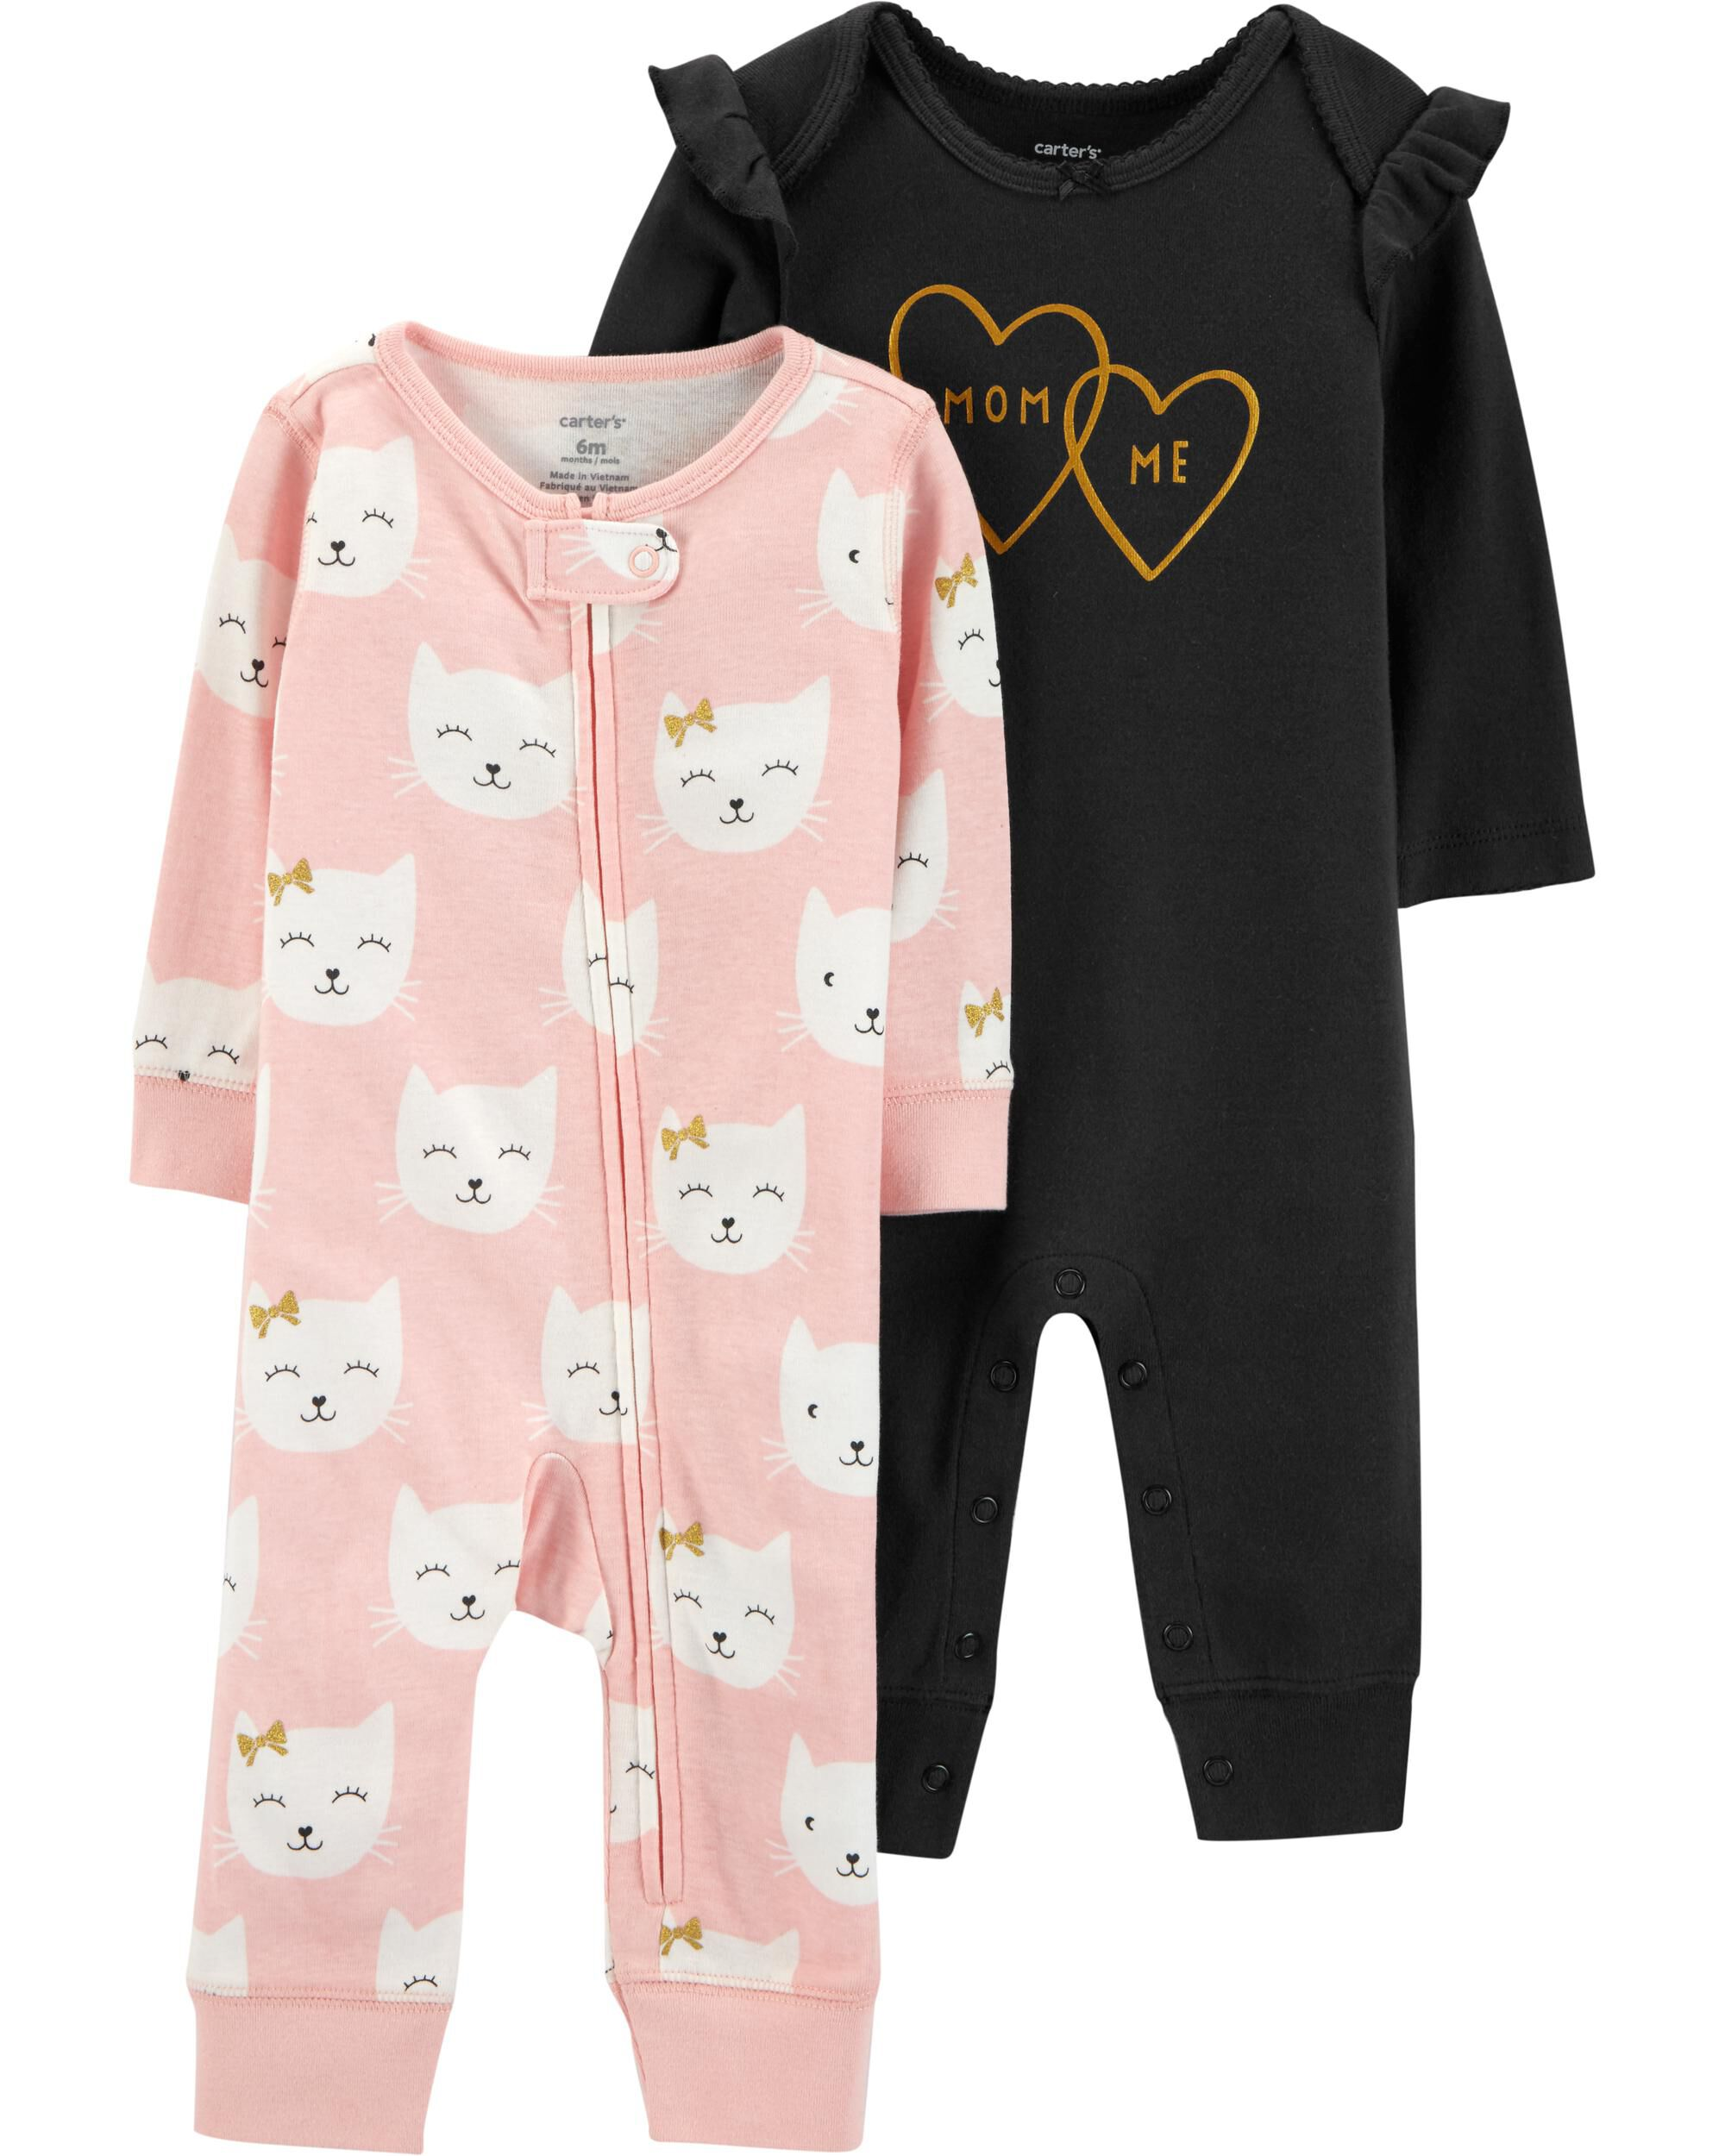 Carters Baby Girls 2-pk Mom /& Me Jumpsuits